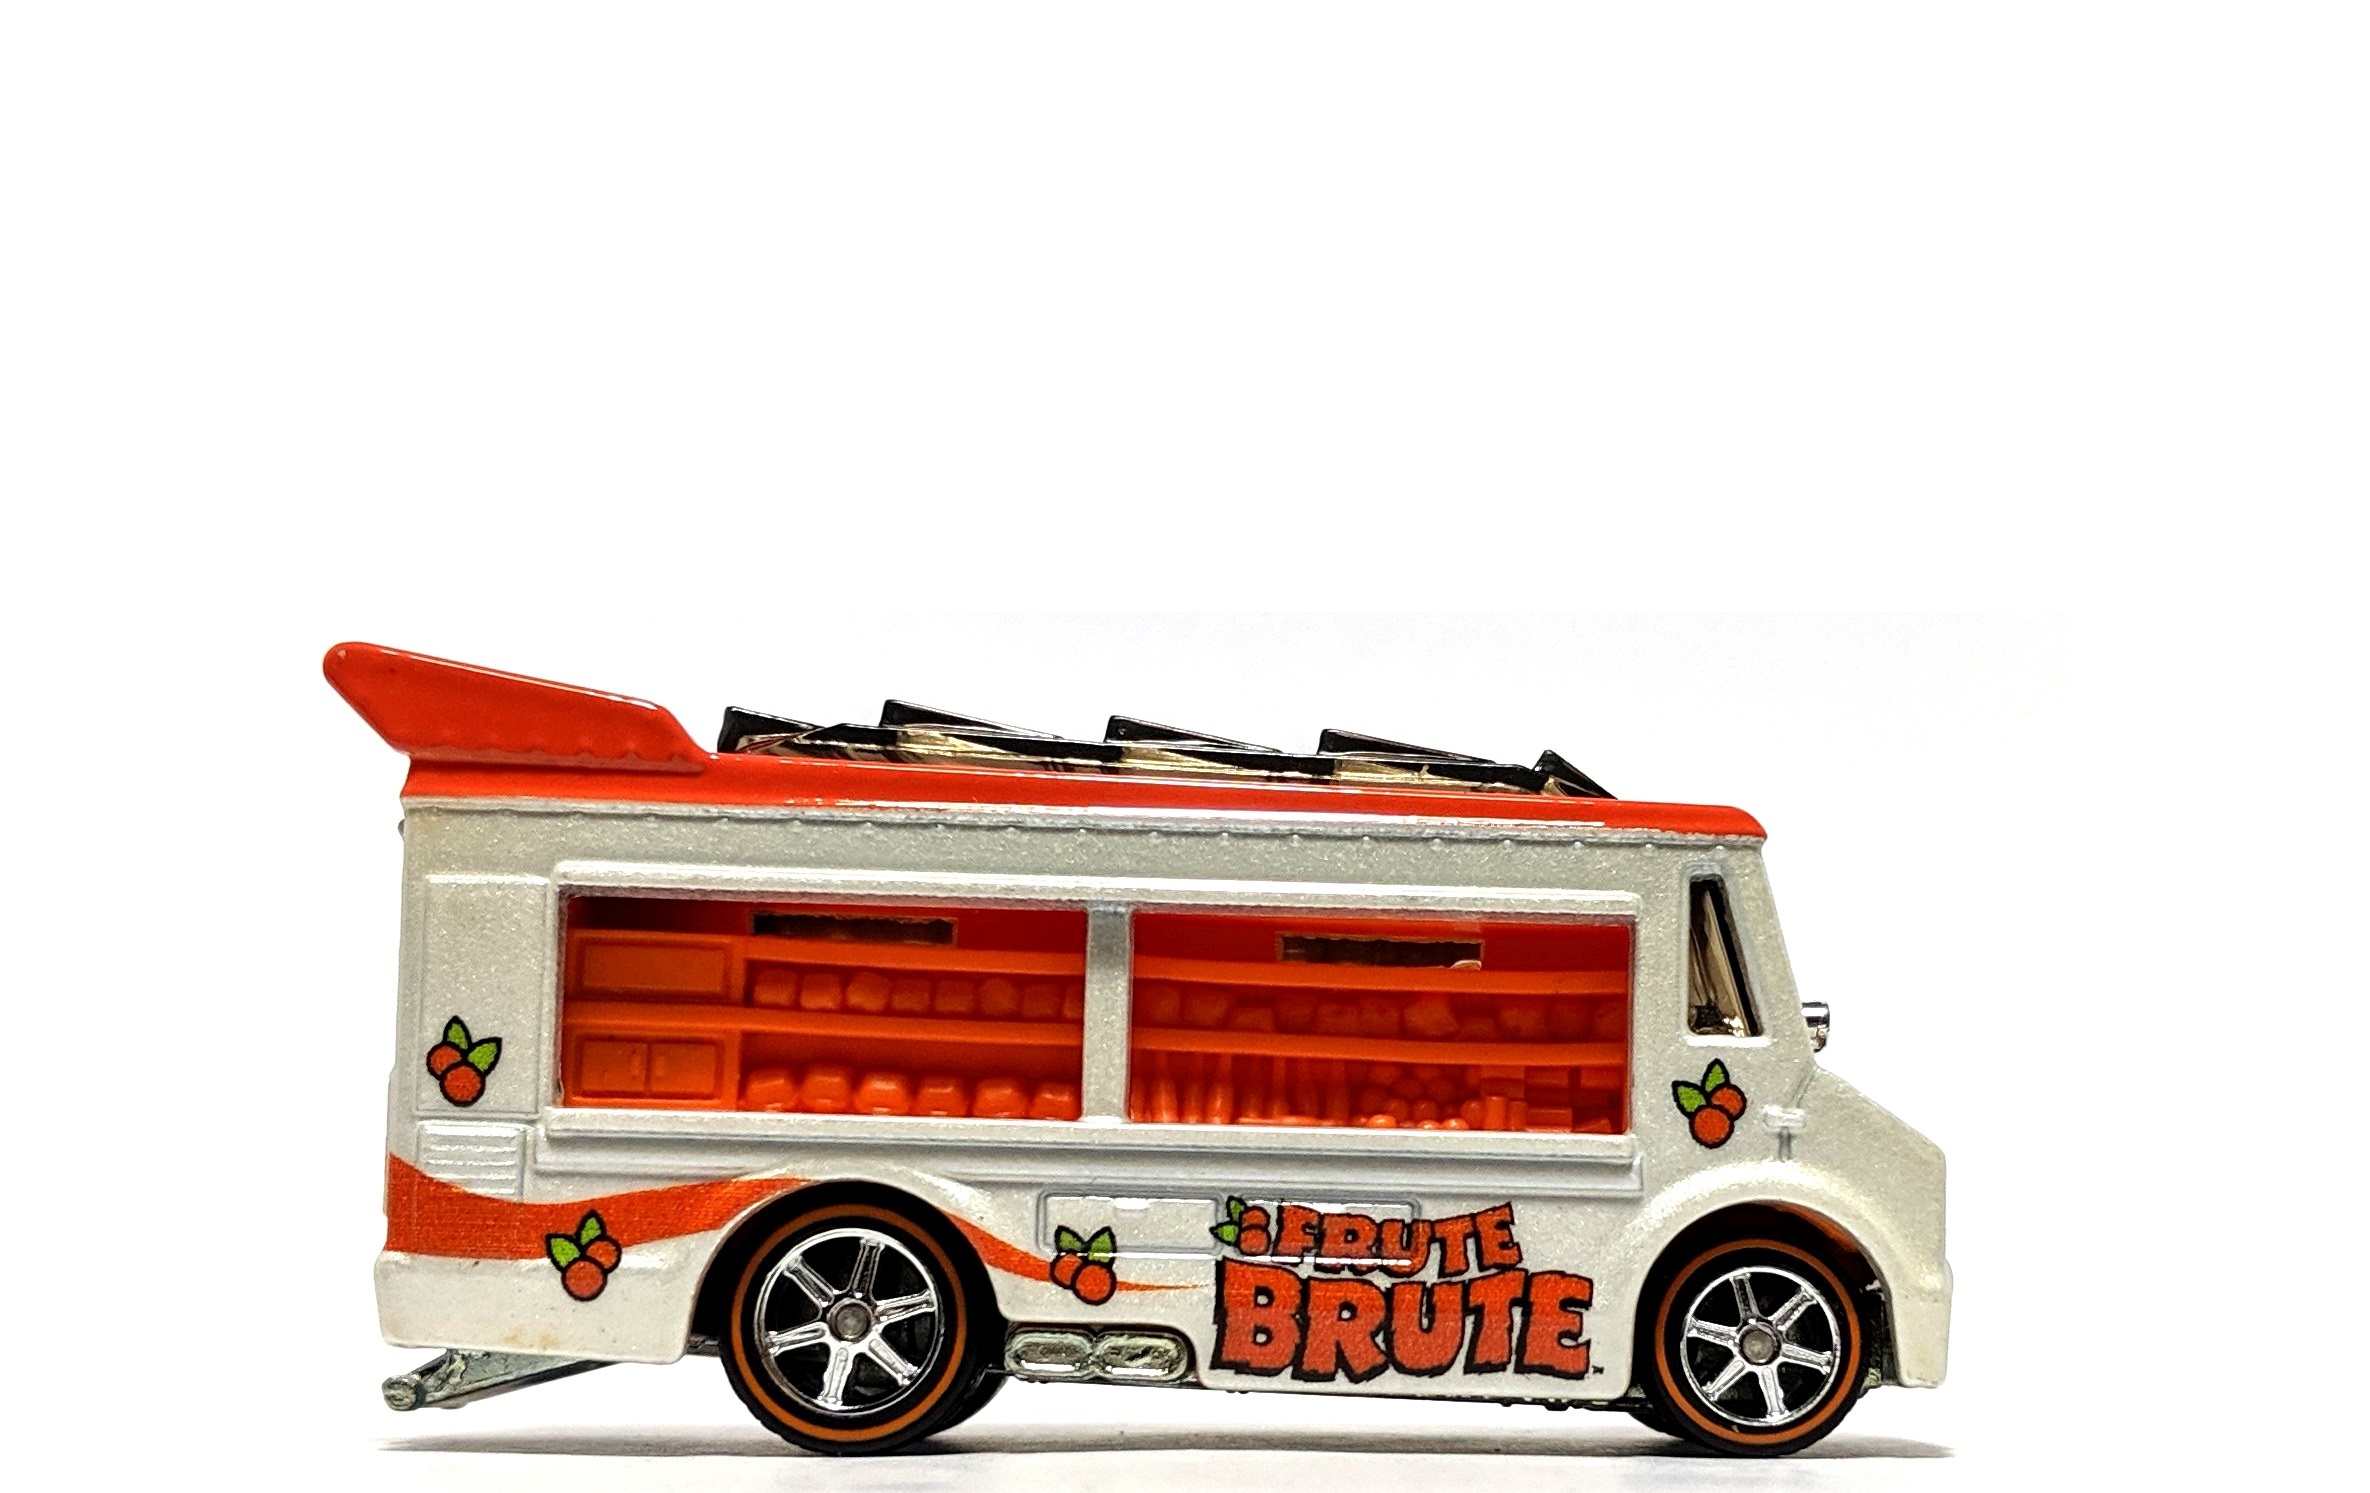 "Smokin' Grille ""Frute Brute"" - Hot Wheels Pop Culture"